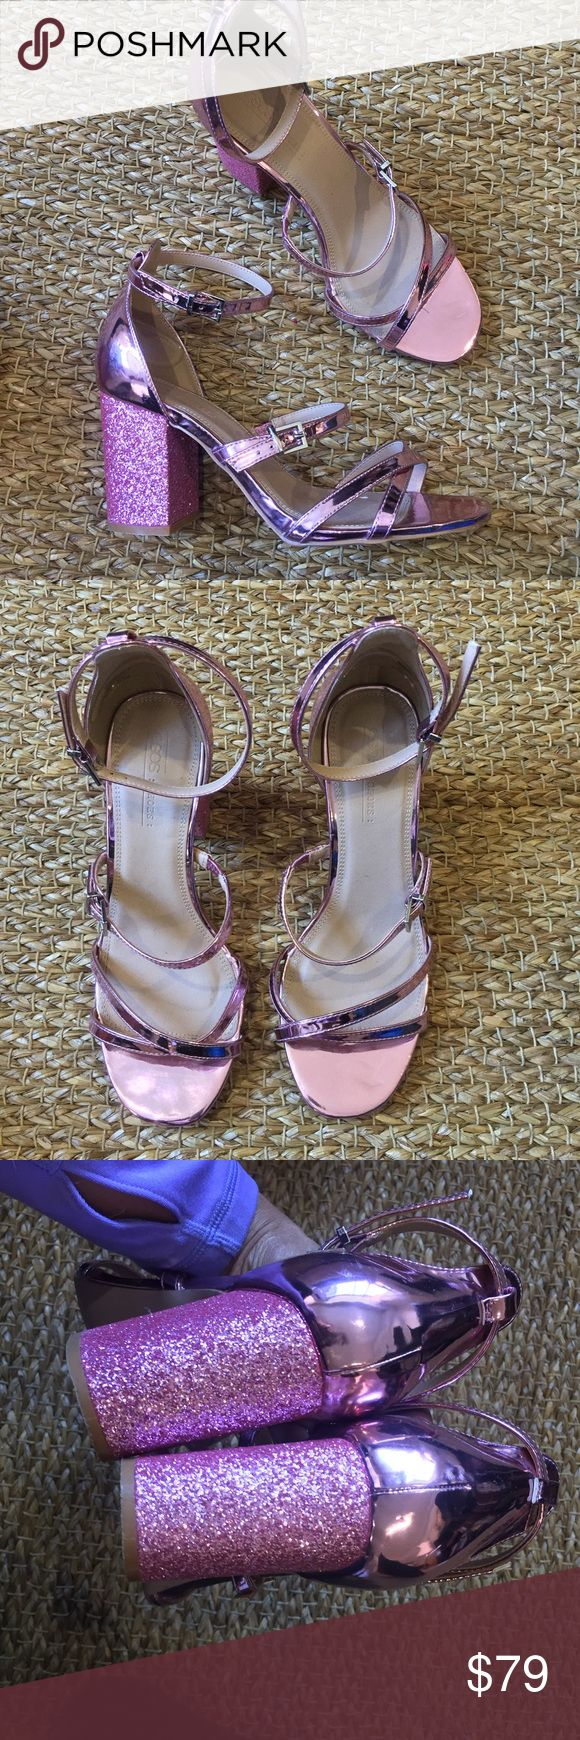 🦄ASOS Pink Glitter Chunky Heel Super cute pink glittery chunky heel sandals with ankle strap. Super comfortable. Worn 2 times. In perfect condition. Soles show minor signs of wear. Size says 7 but fits like a 9-9.5 .It was a factory error :) ASOS Shoes Sandals